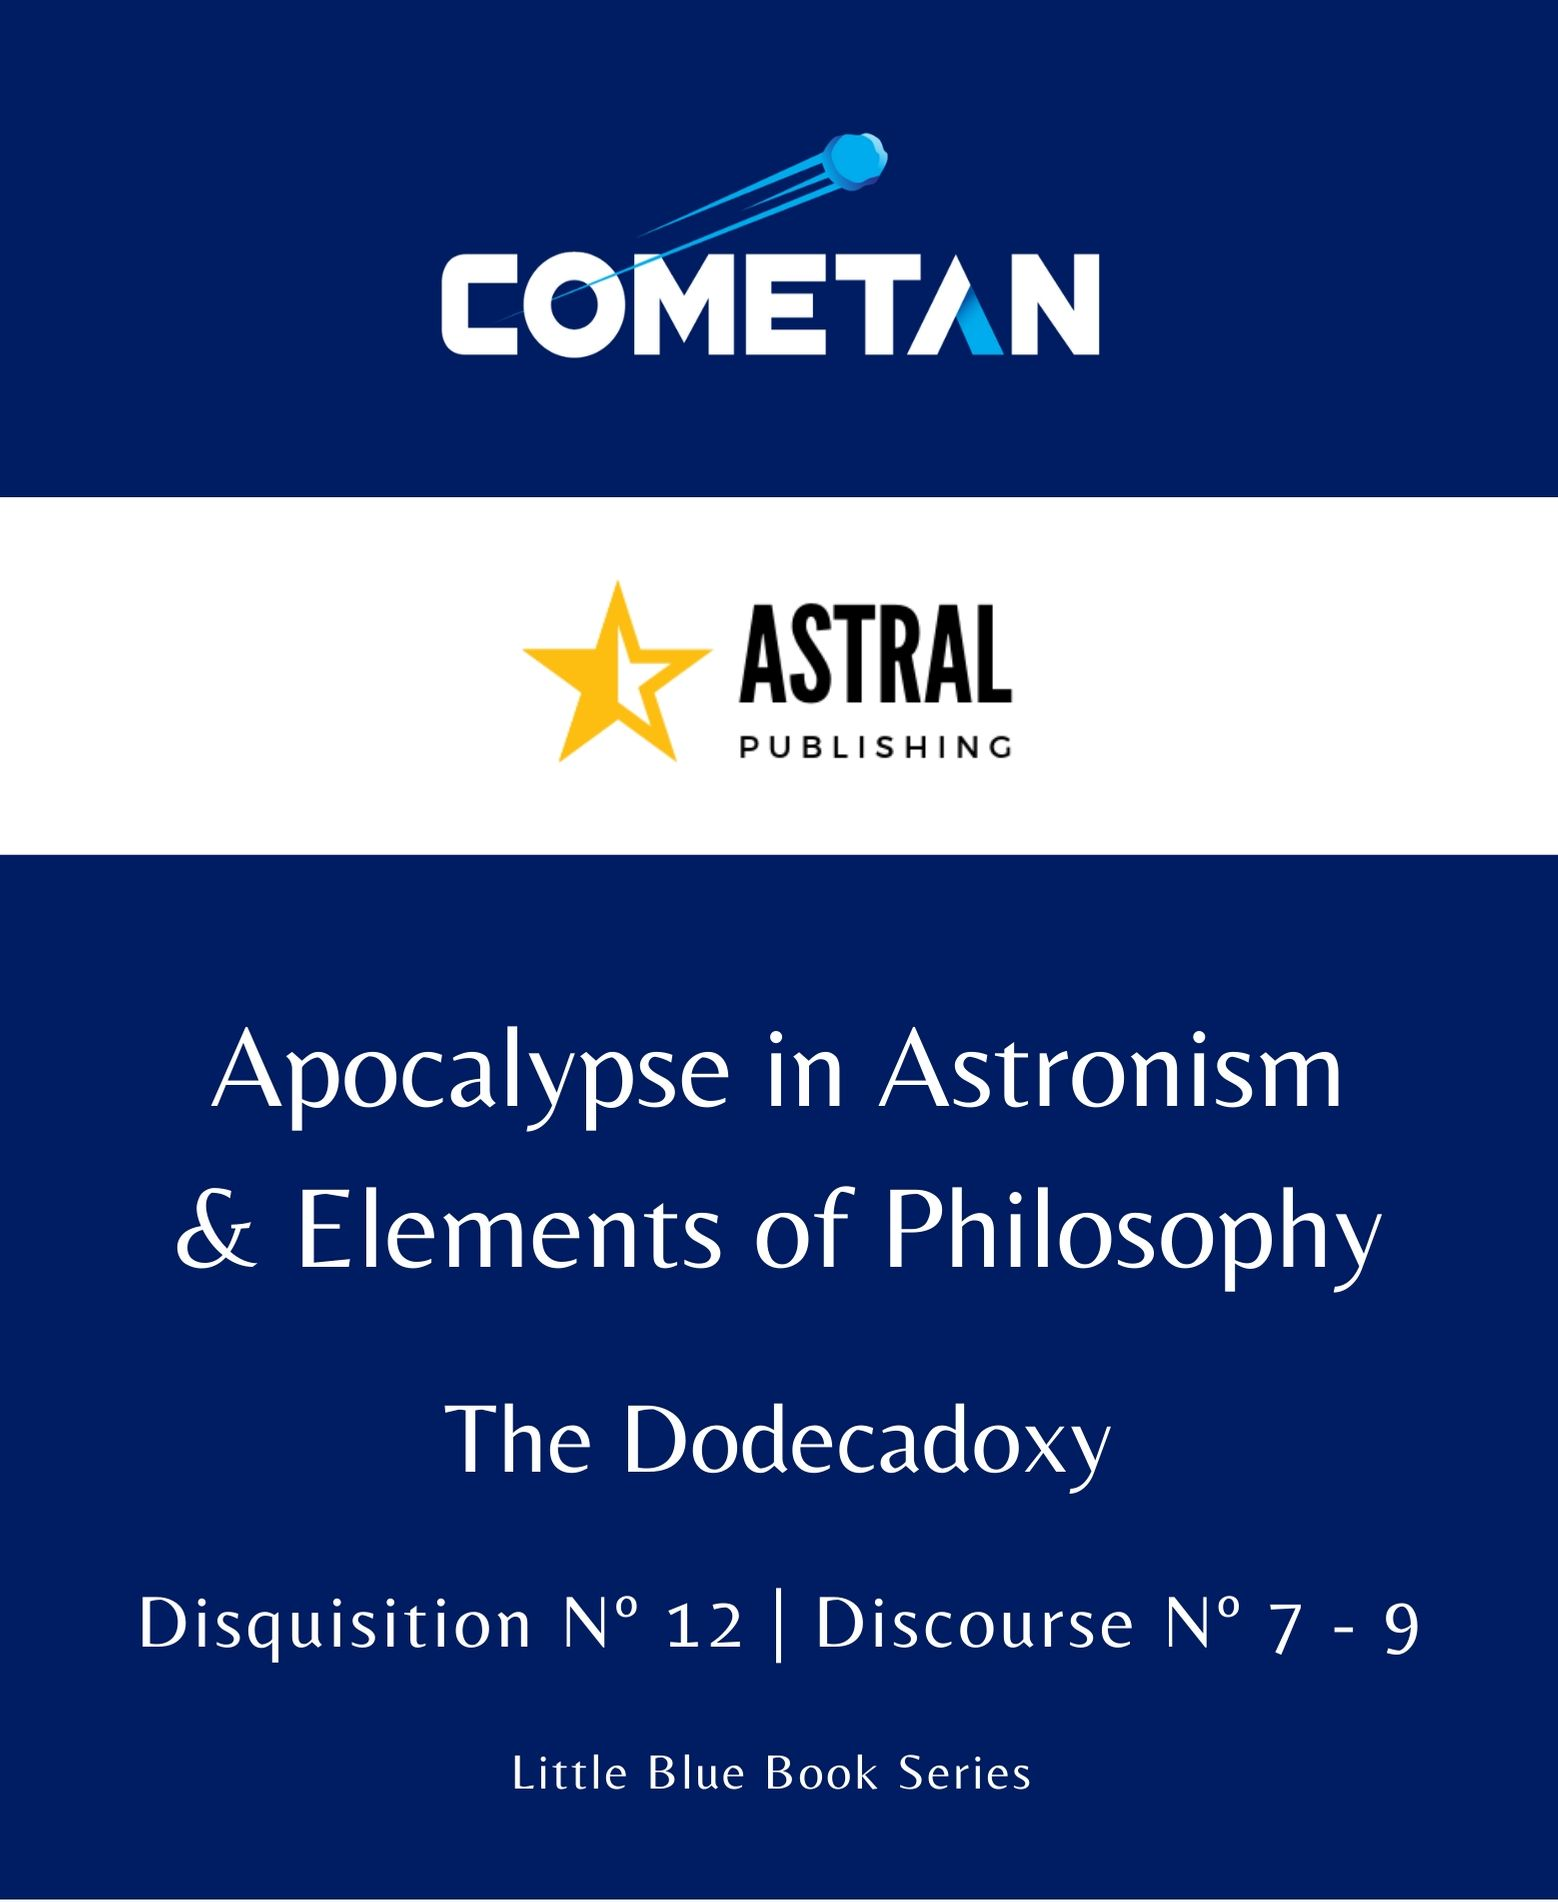 Apocalypse in Astronism & Elements of Philosophy (Little Blue Book Series, #128)